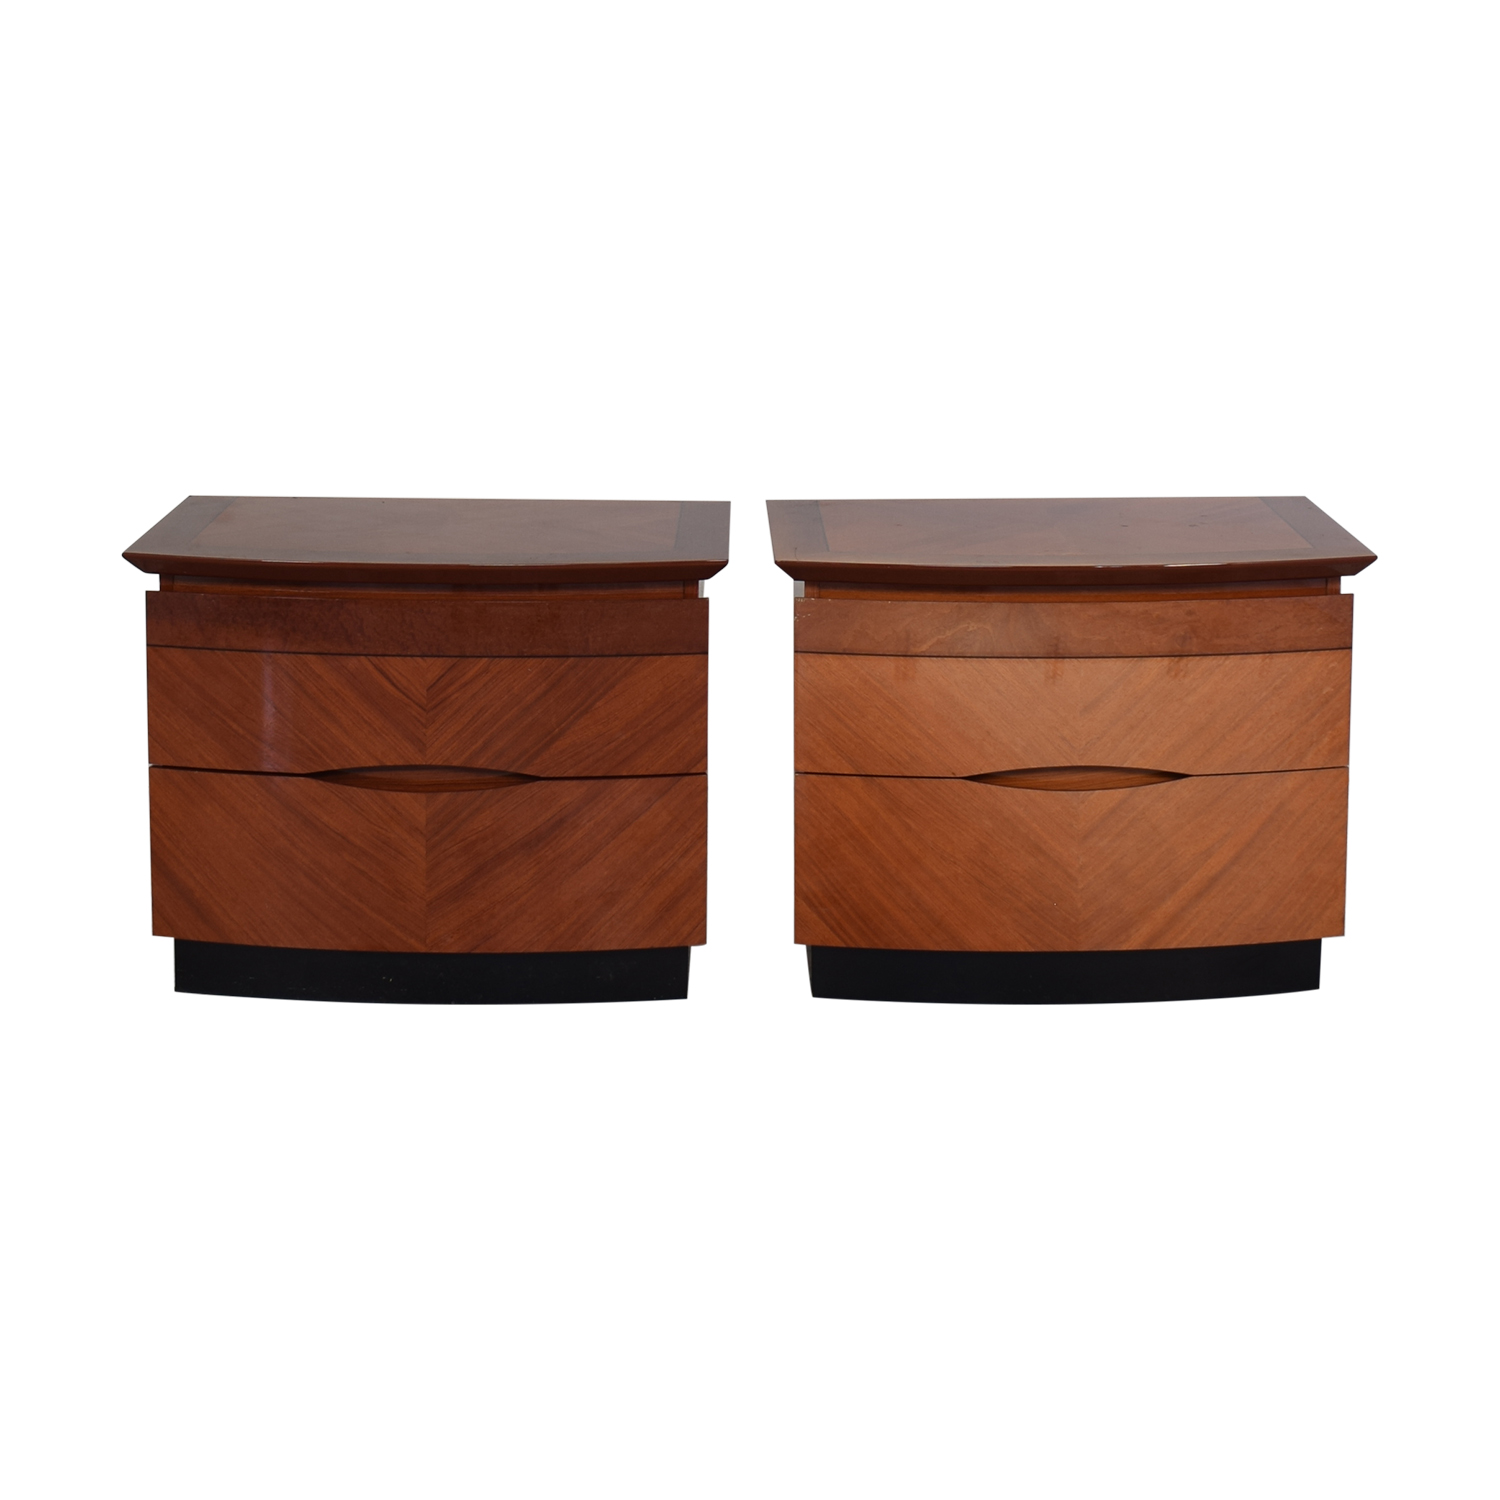 Two Drawer Nightstands / Tables